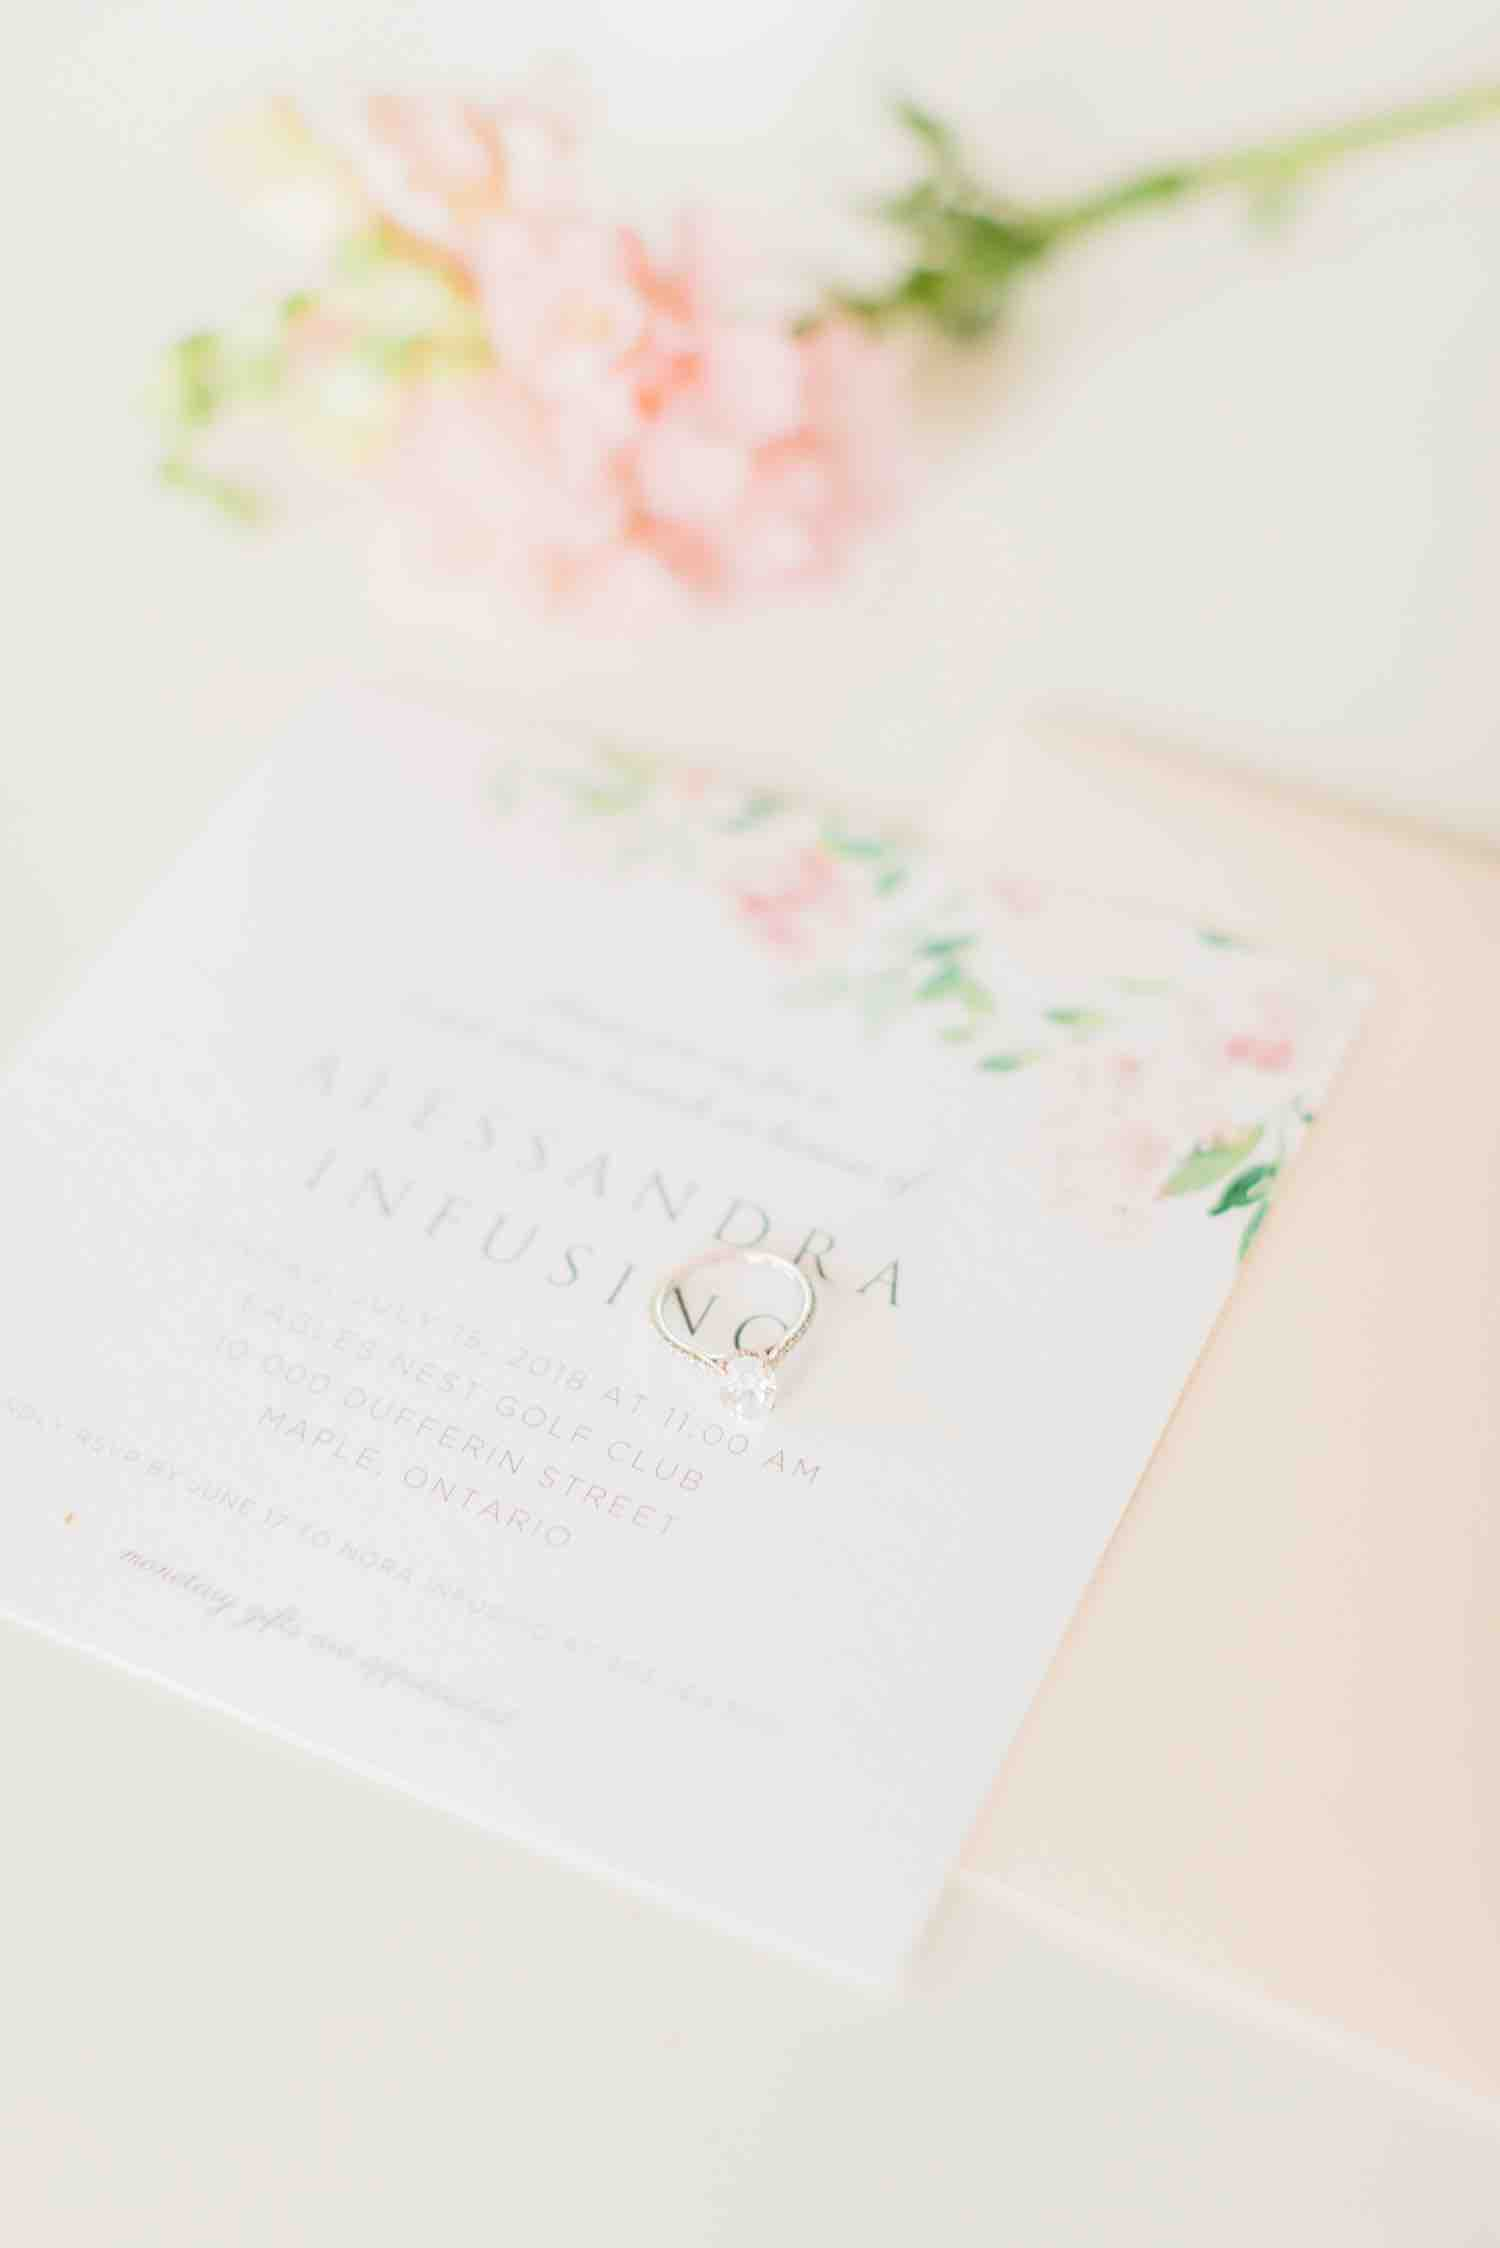 Bridal shower invitation with engagement ring at Eagles Nest Golf Club Bridal Shower